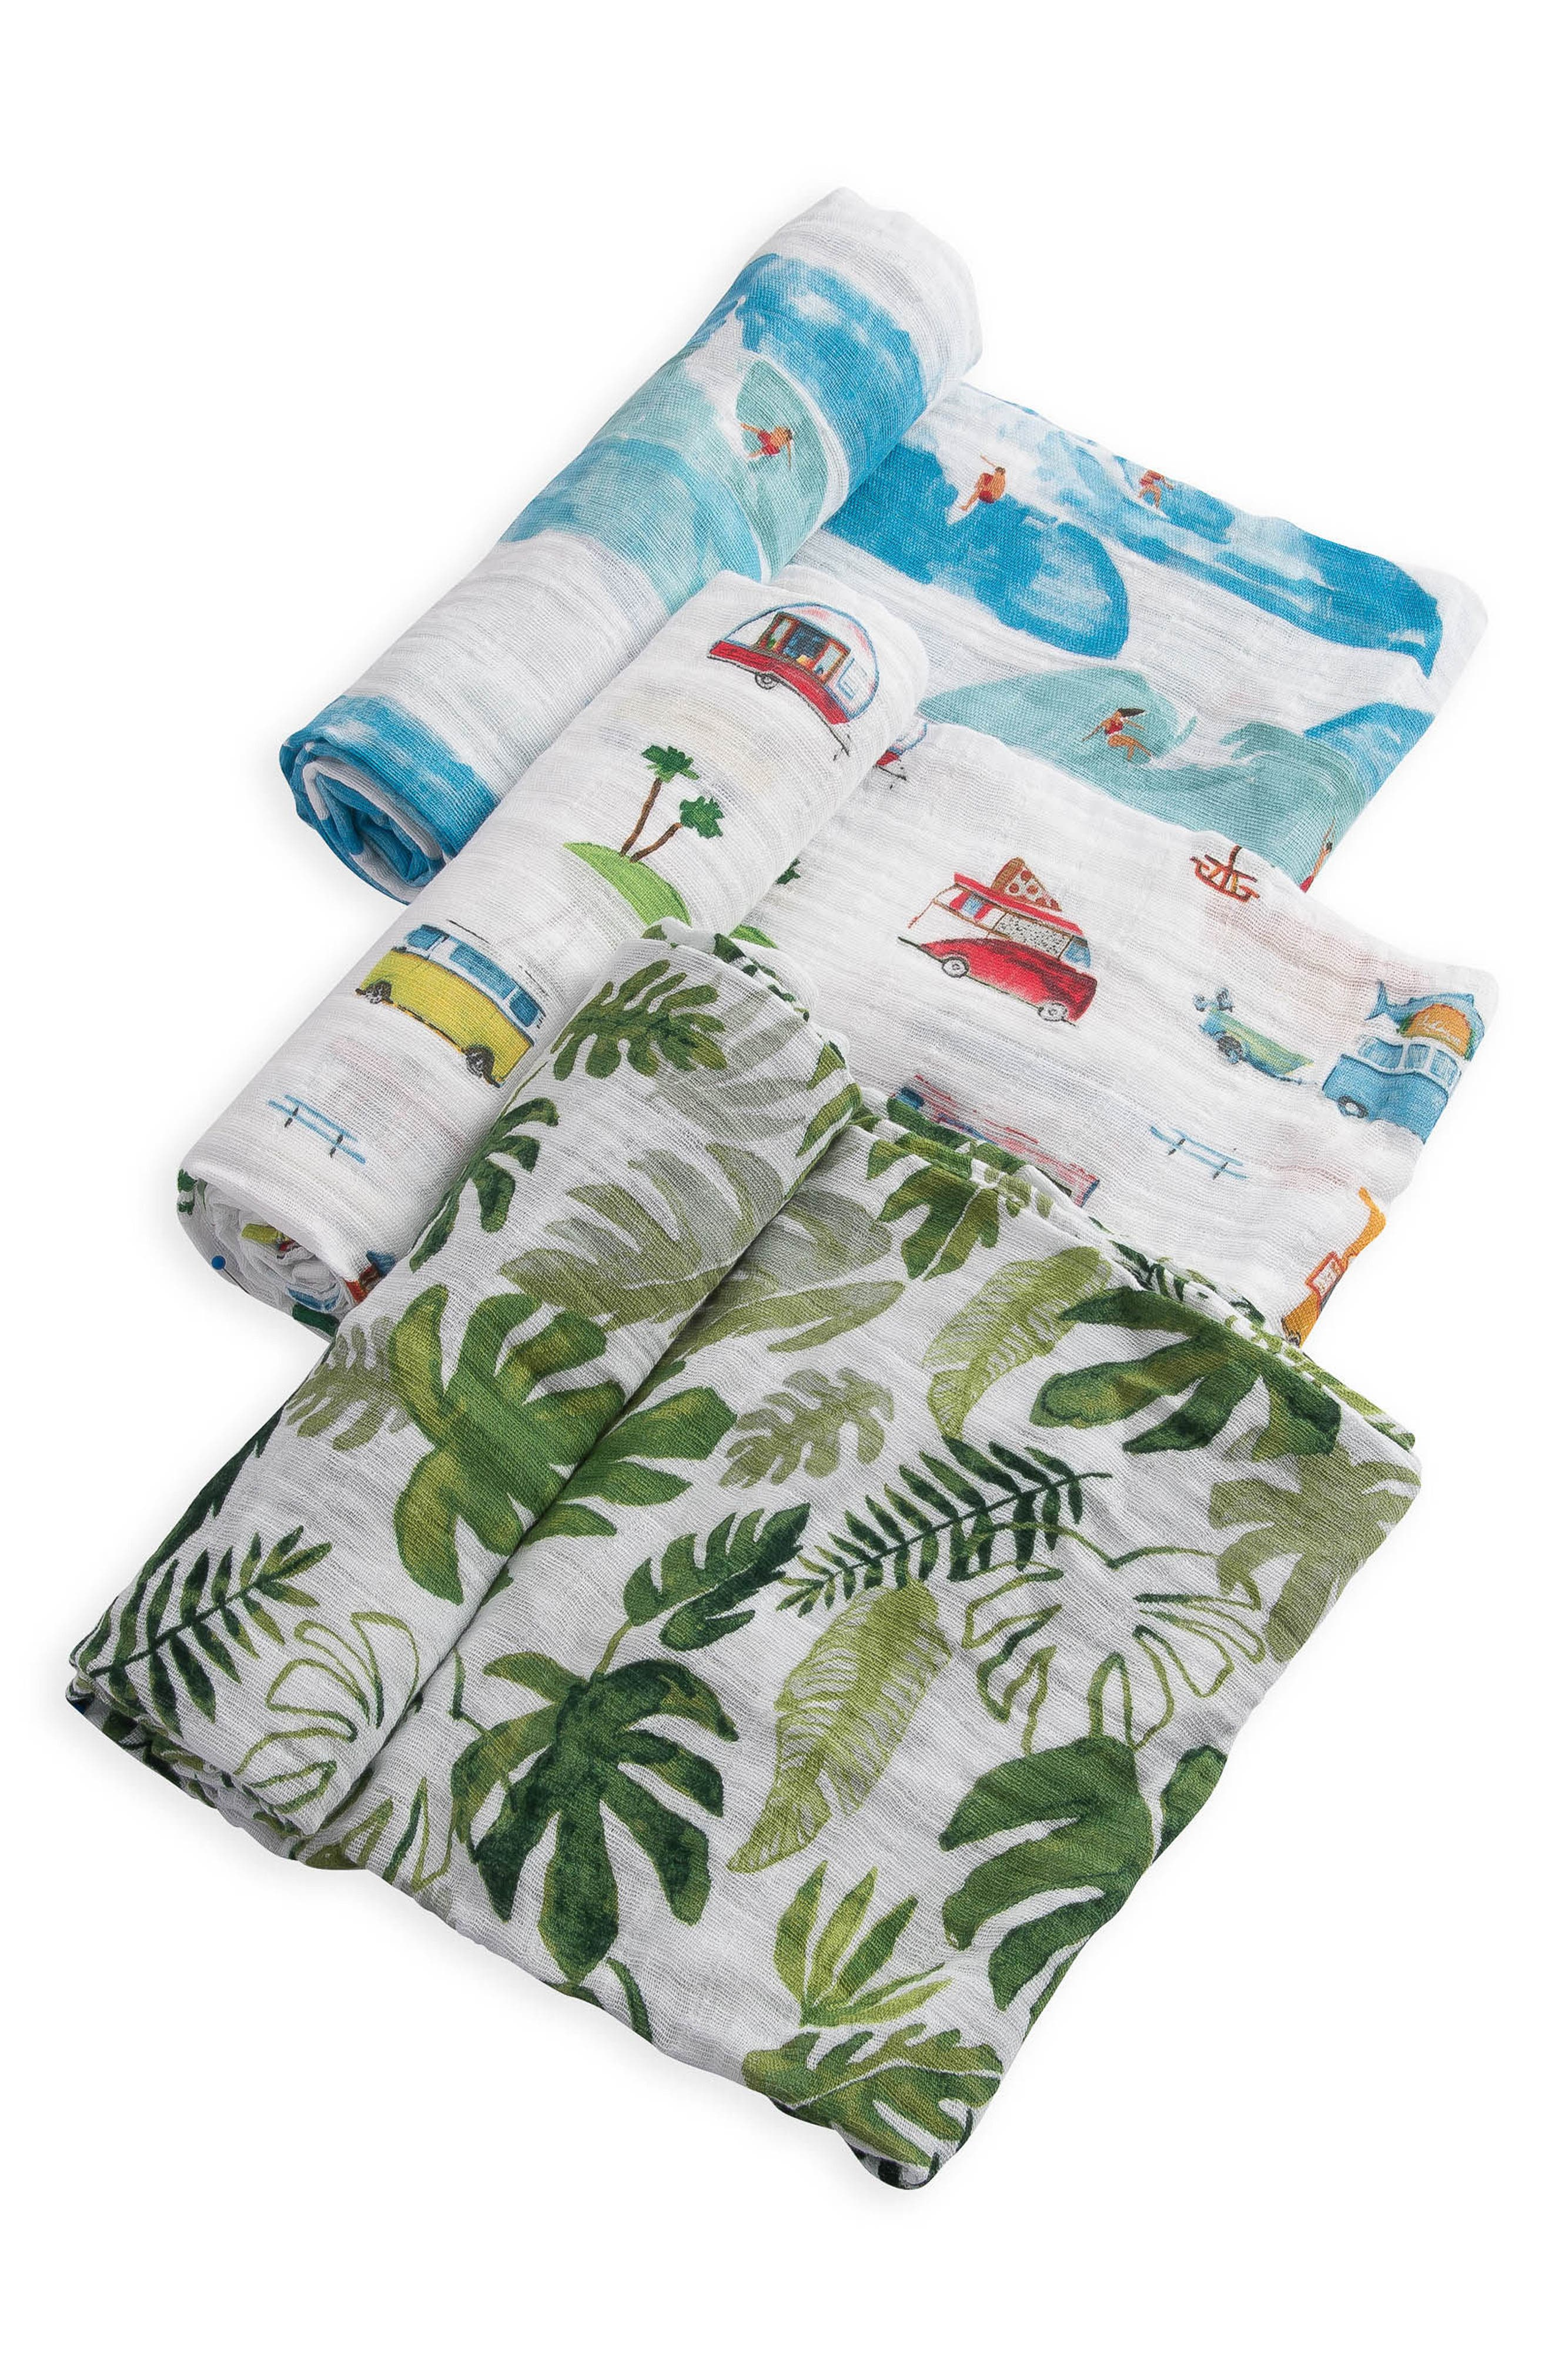 3-Pack Cotton Muslin Blankets,                         Main,                         color, SUMMER VIBE